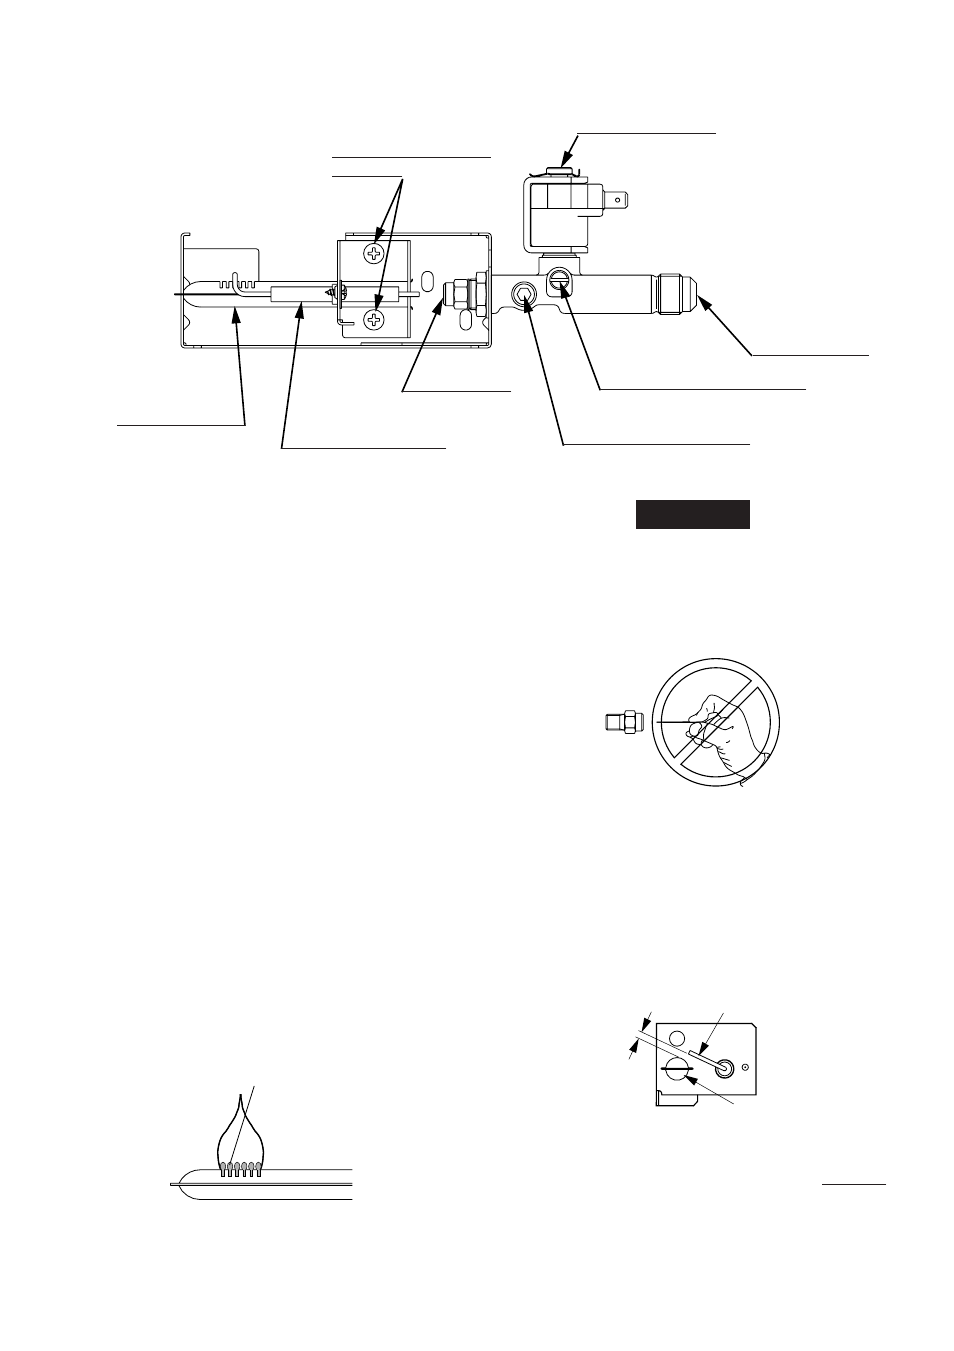 Gas Equipment Assembly Dometic Nda1402 User Manual Page 17 24 Pressure Washer Burner Wiring Diagram